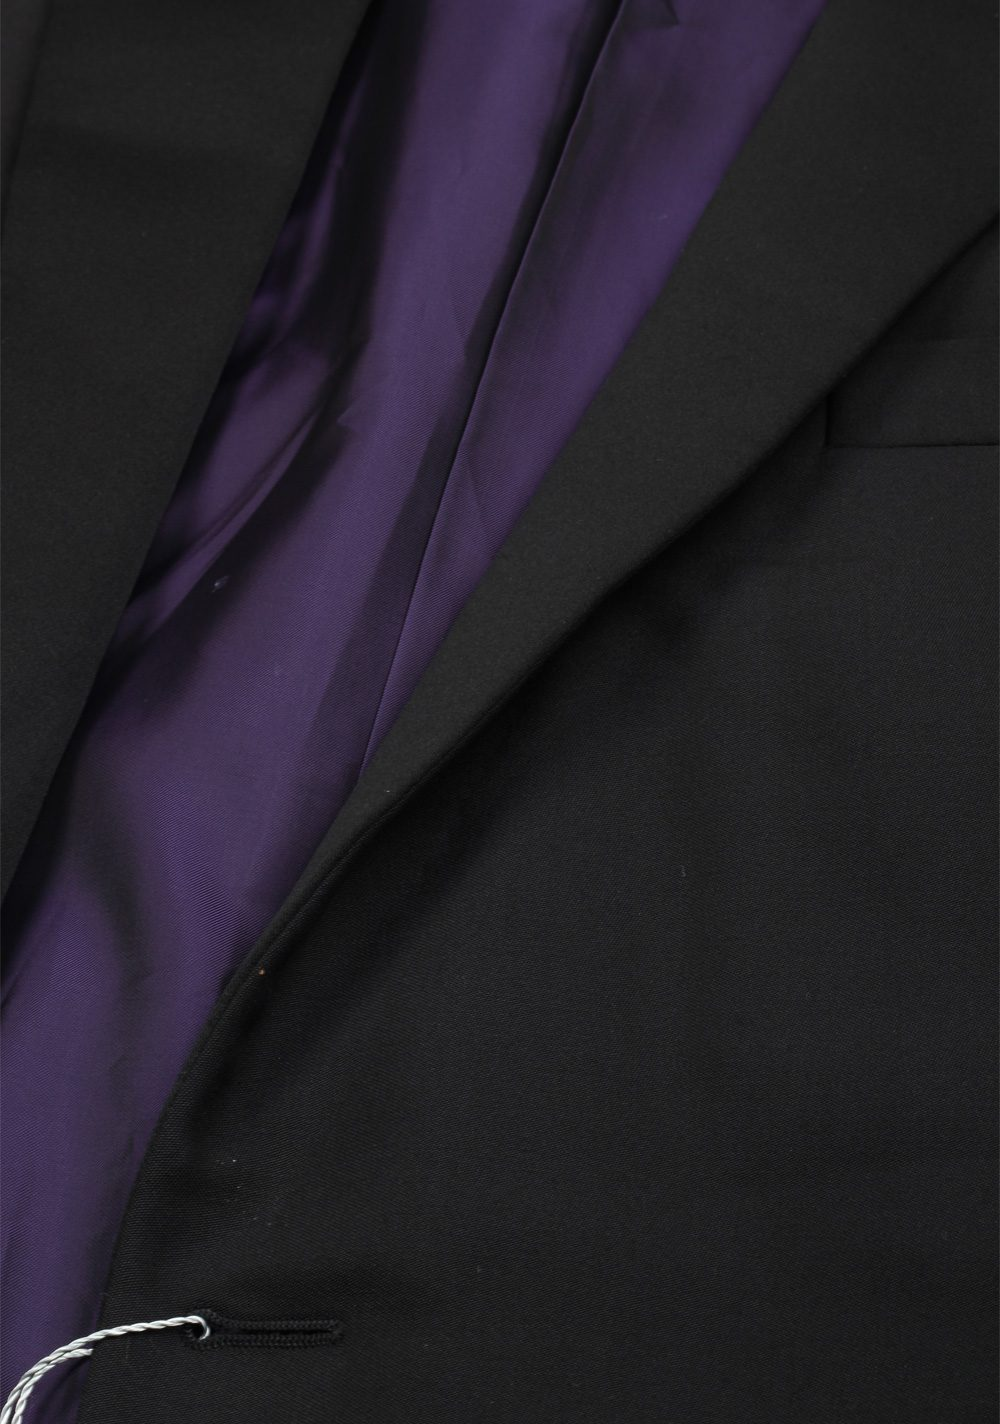 Ralph Lauren Purple Label Black Tuxedo Suit Size 56 / 46 U.S. In Wool | Costume Limité